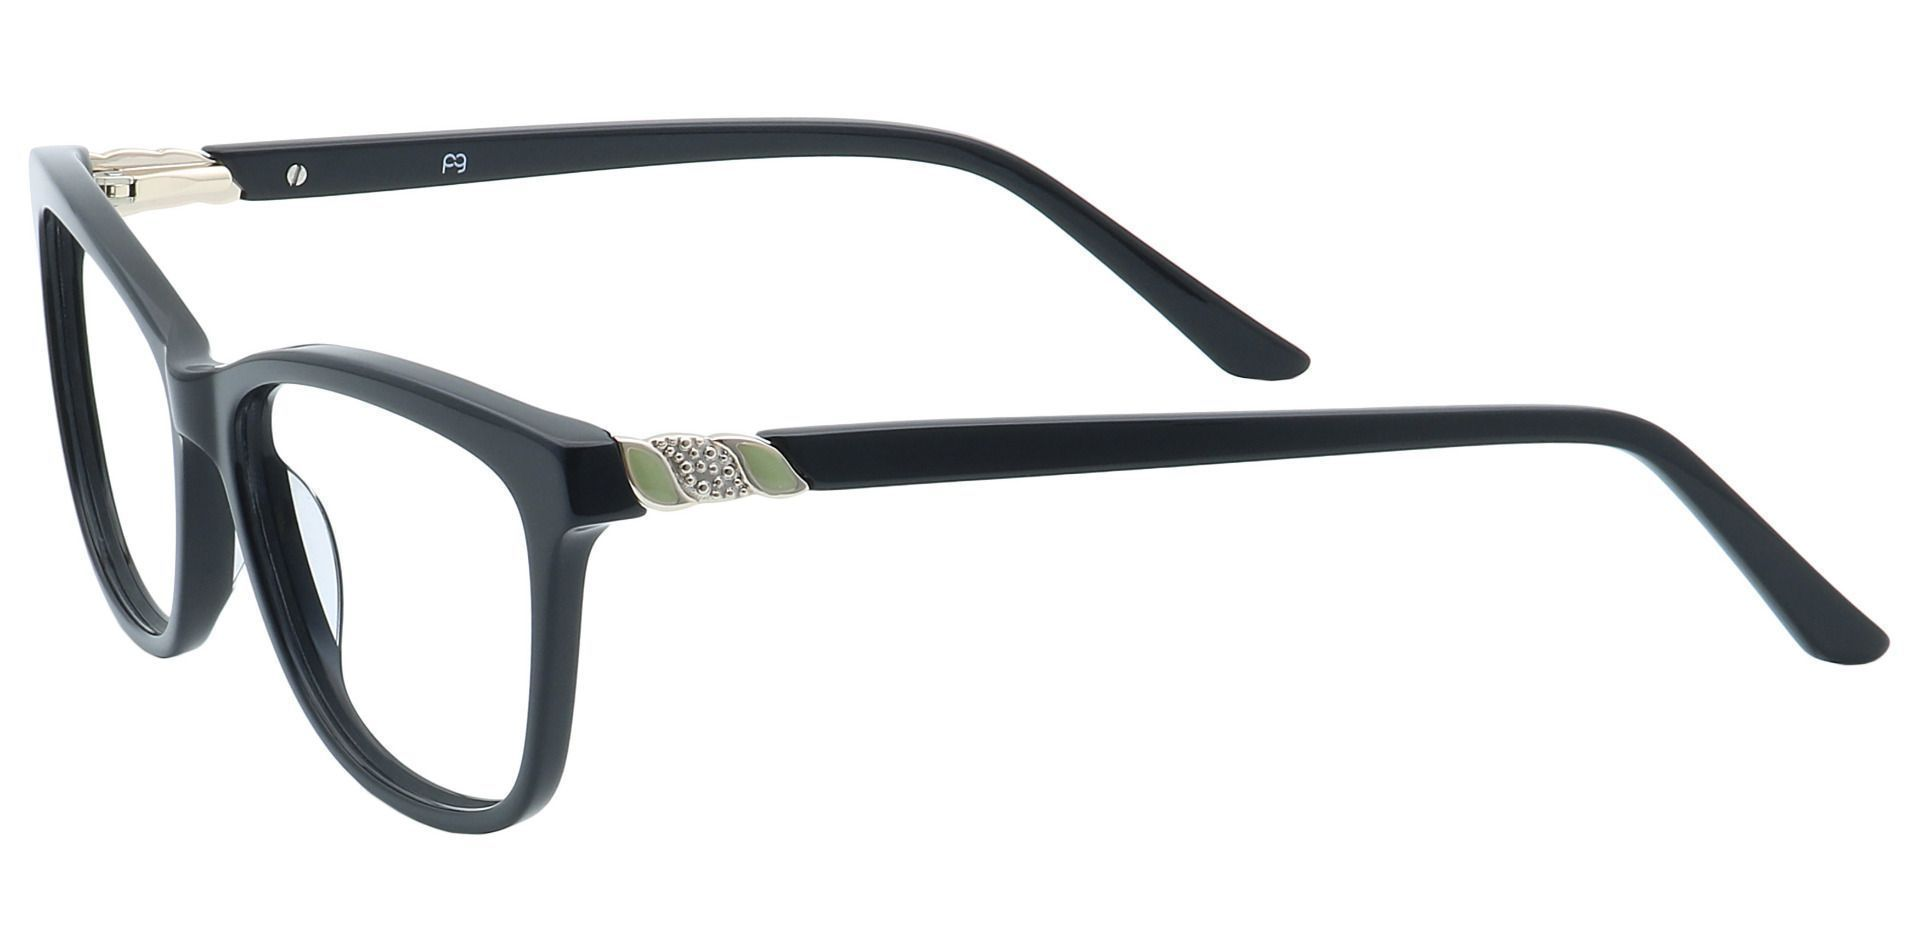 Reggie Oval Prescription Glasses - Black